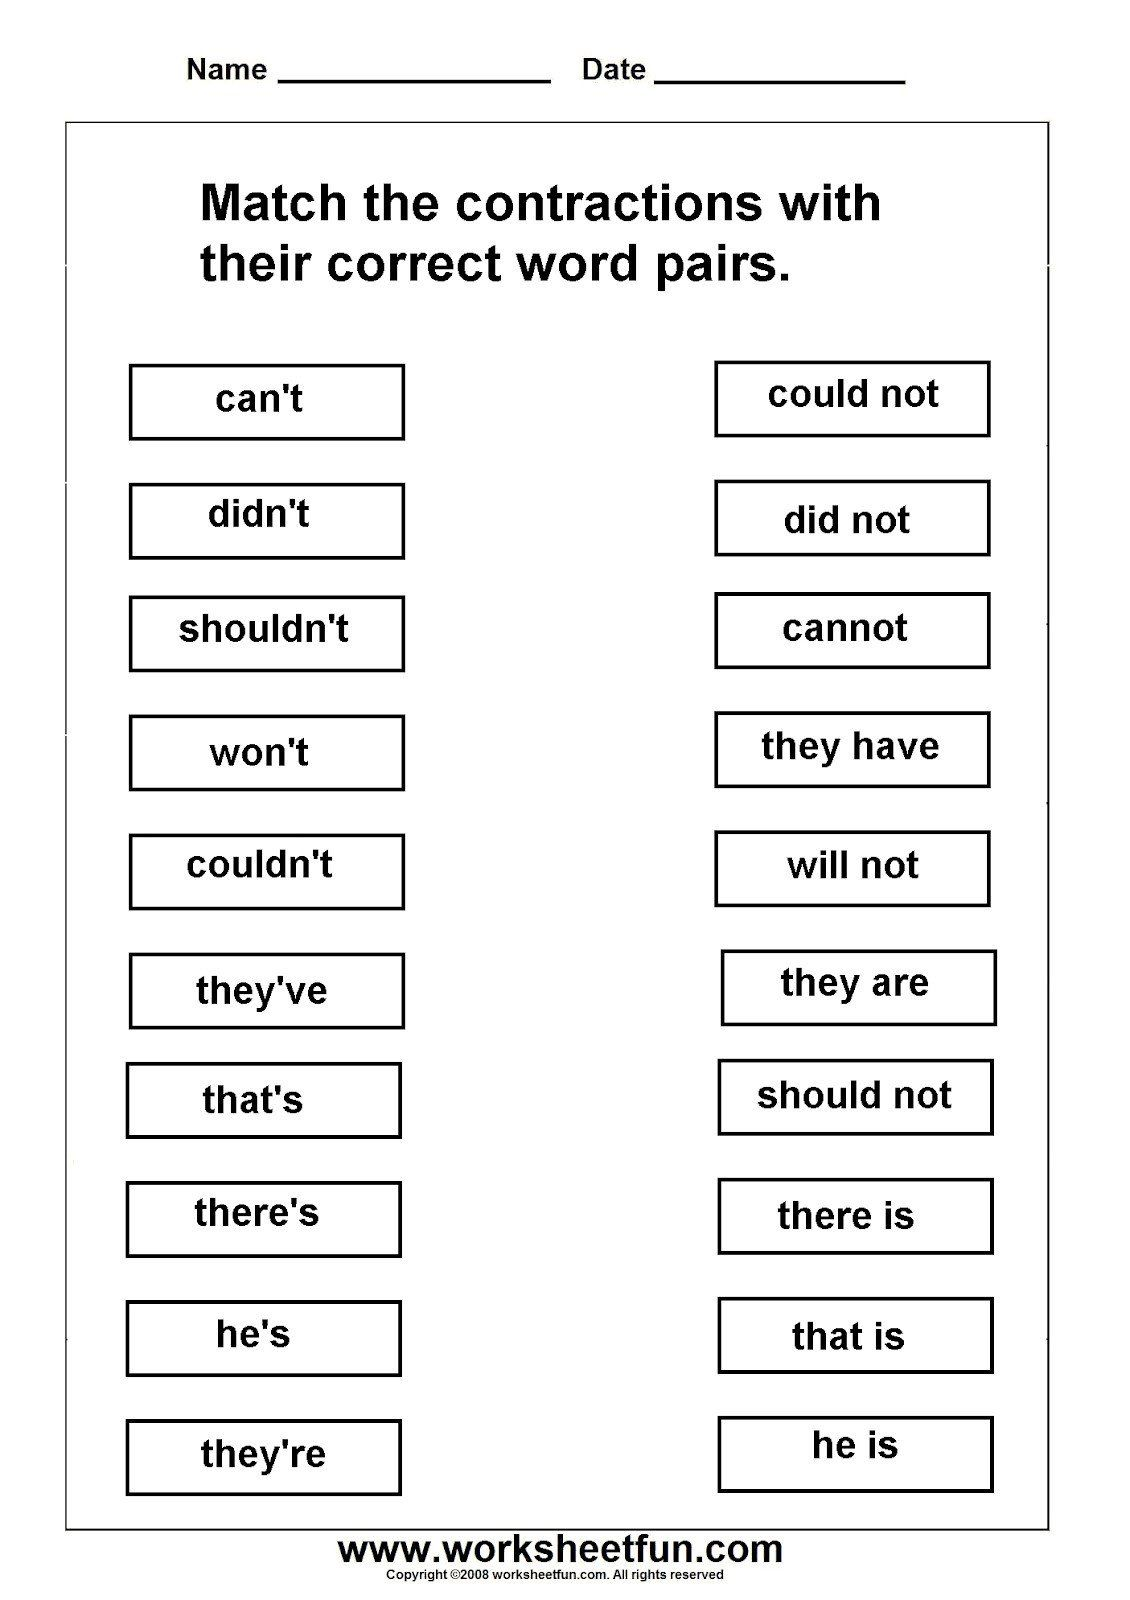 Worksheet About Contractions   Printable Worksheets and Activities for  Teachers [ 1600 x 1130 Pixel ]